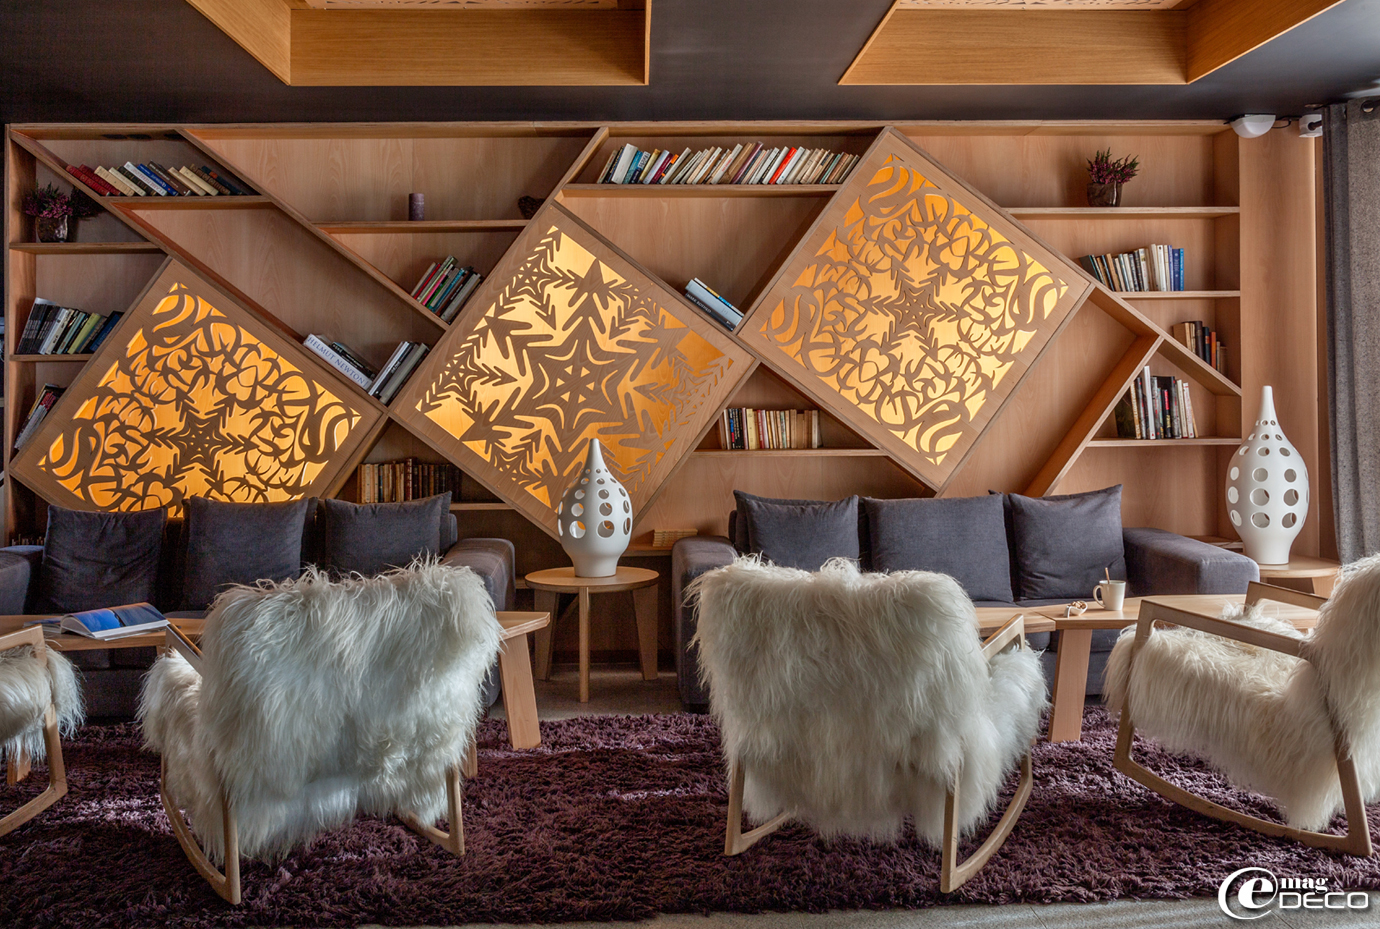 5-star hotel in Val Thorens 'Altapura', a report of the magazine of decoration 'e-magDECO'